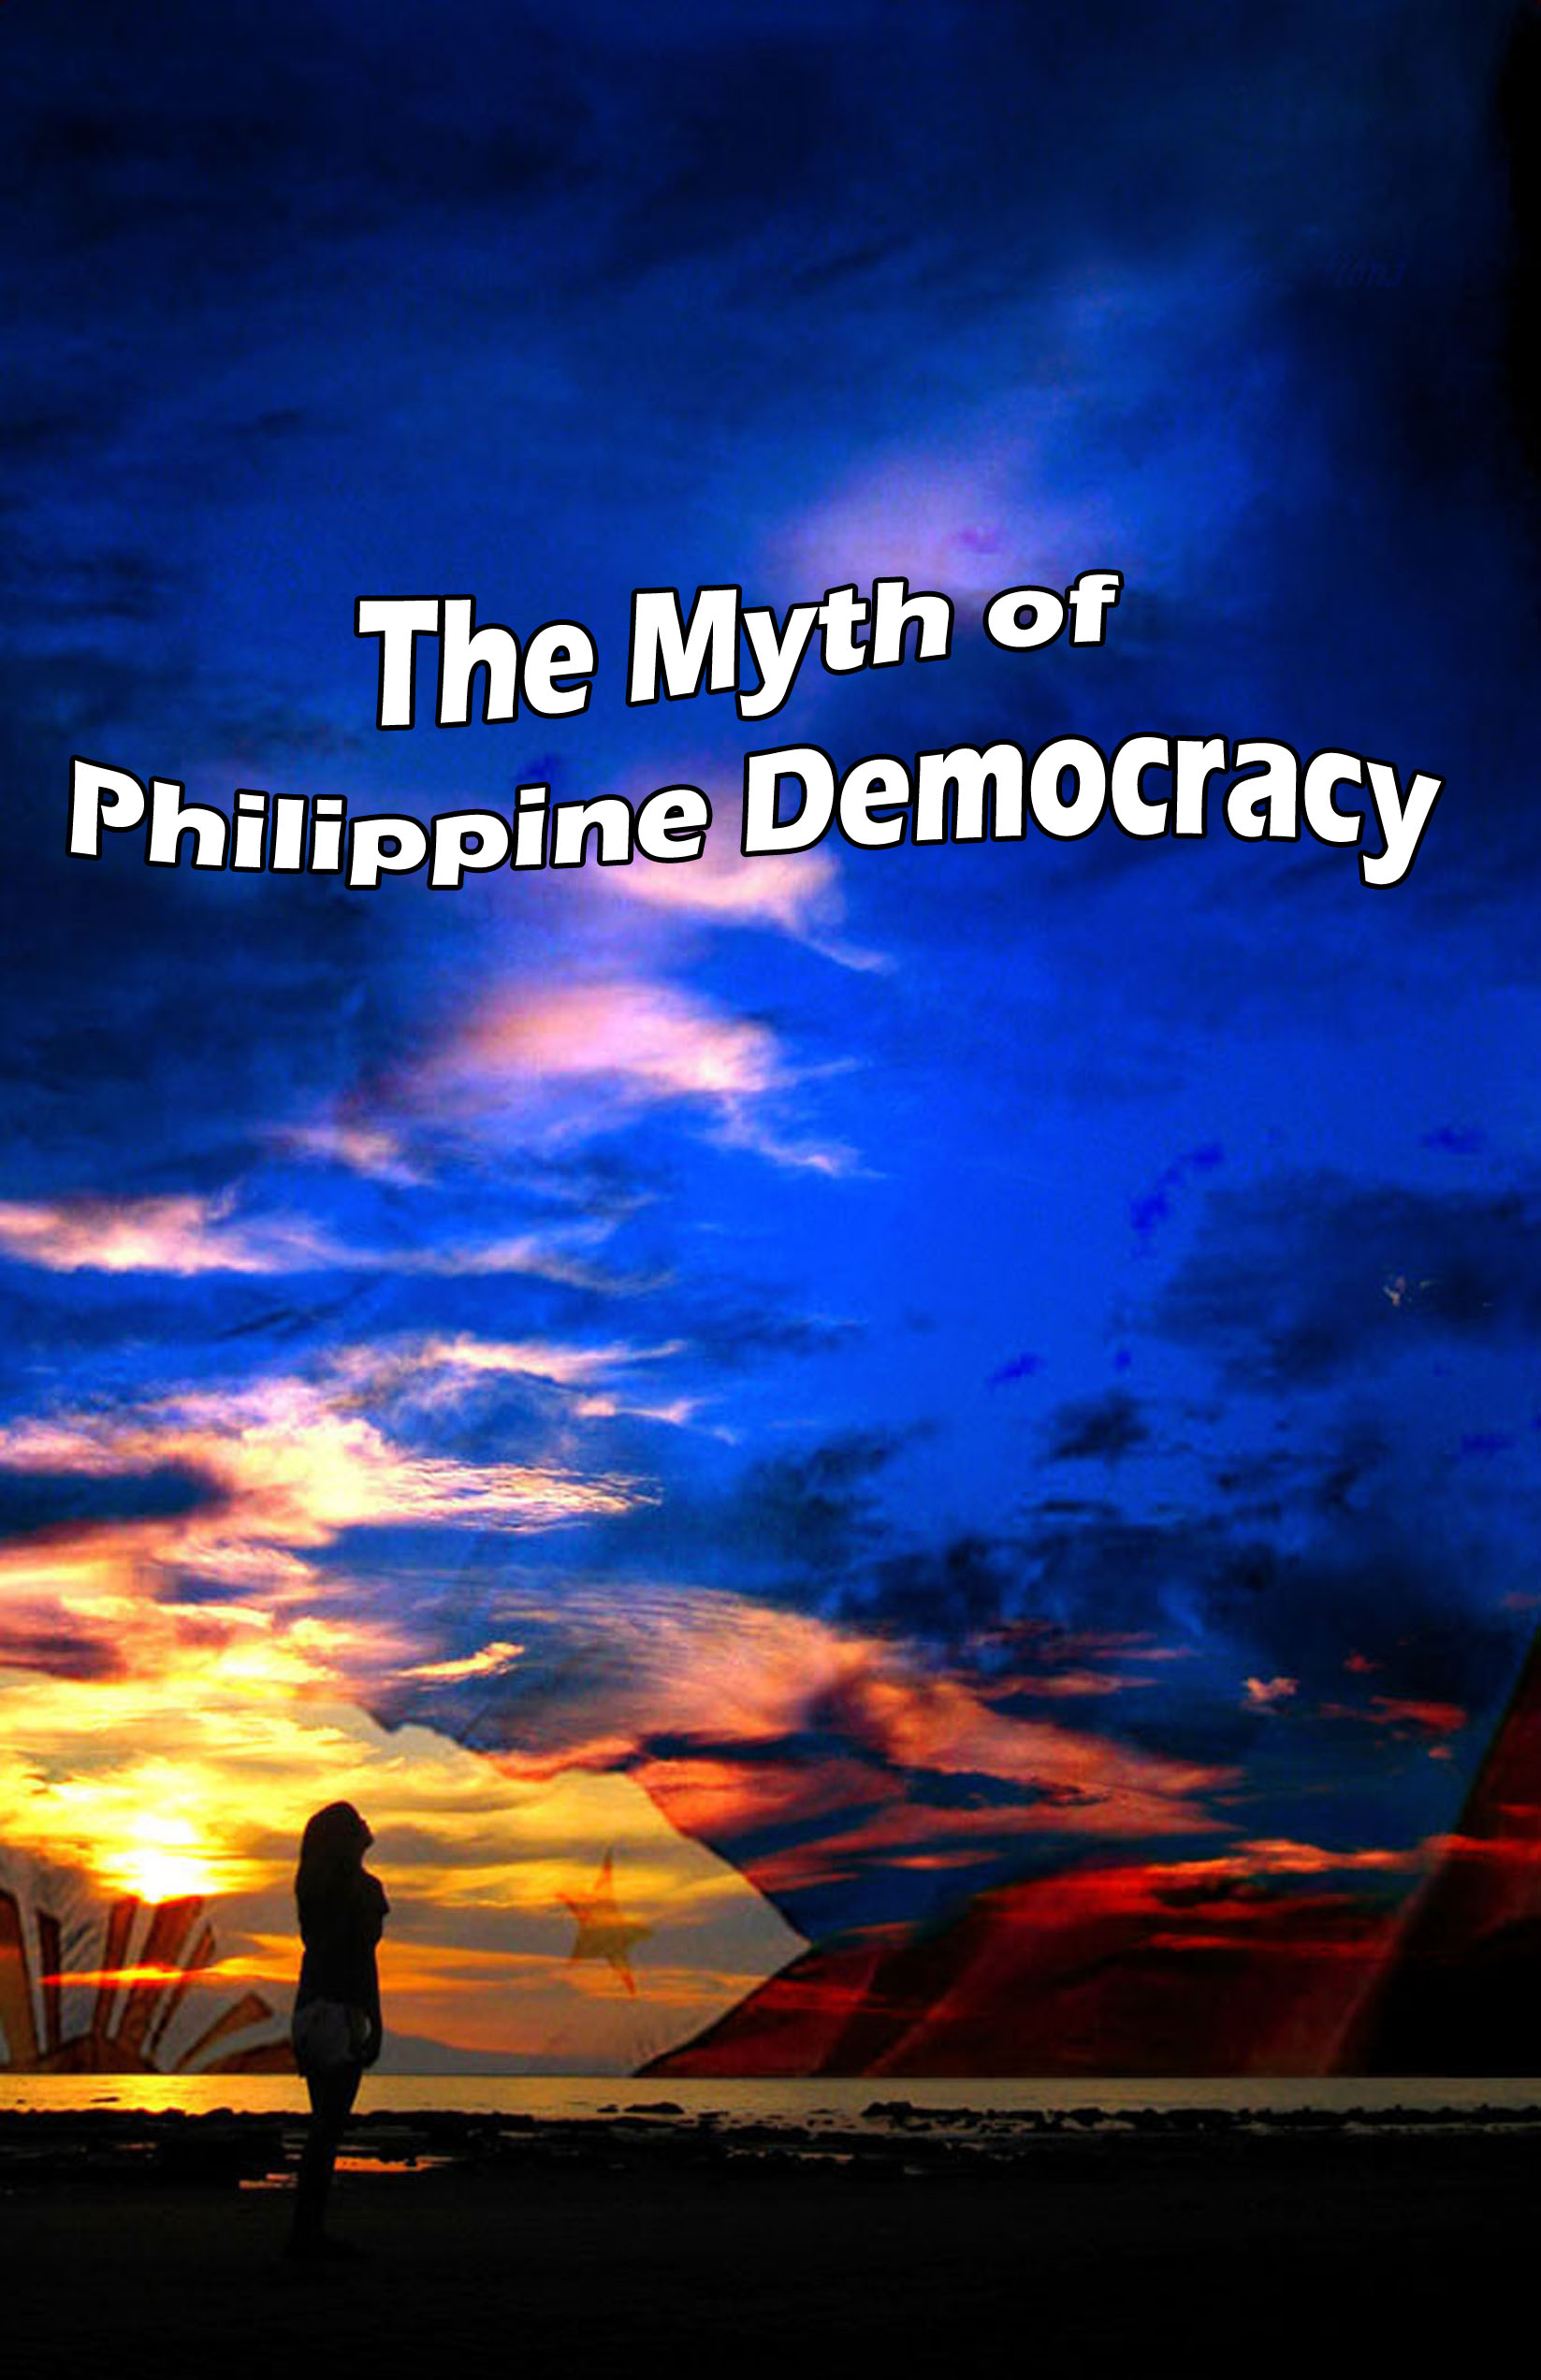 The Myth of Philippine Democracy